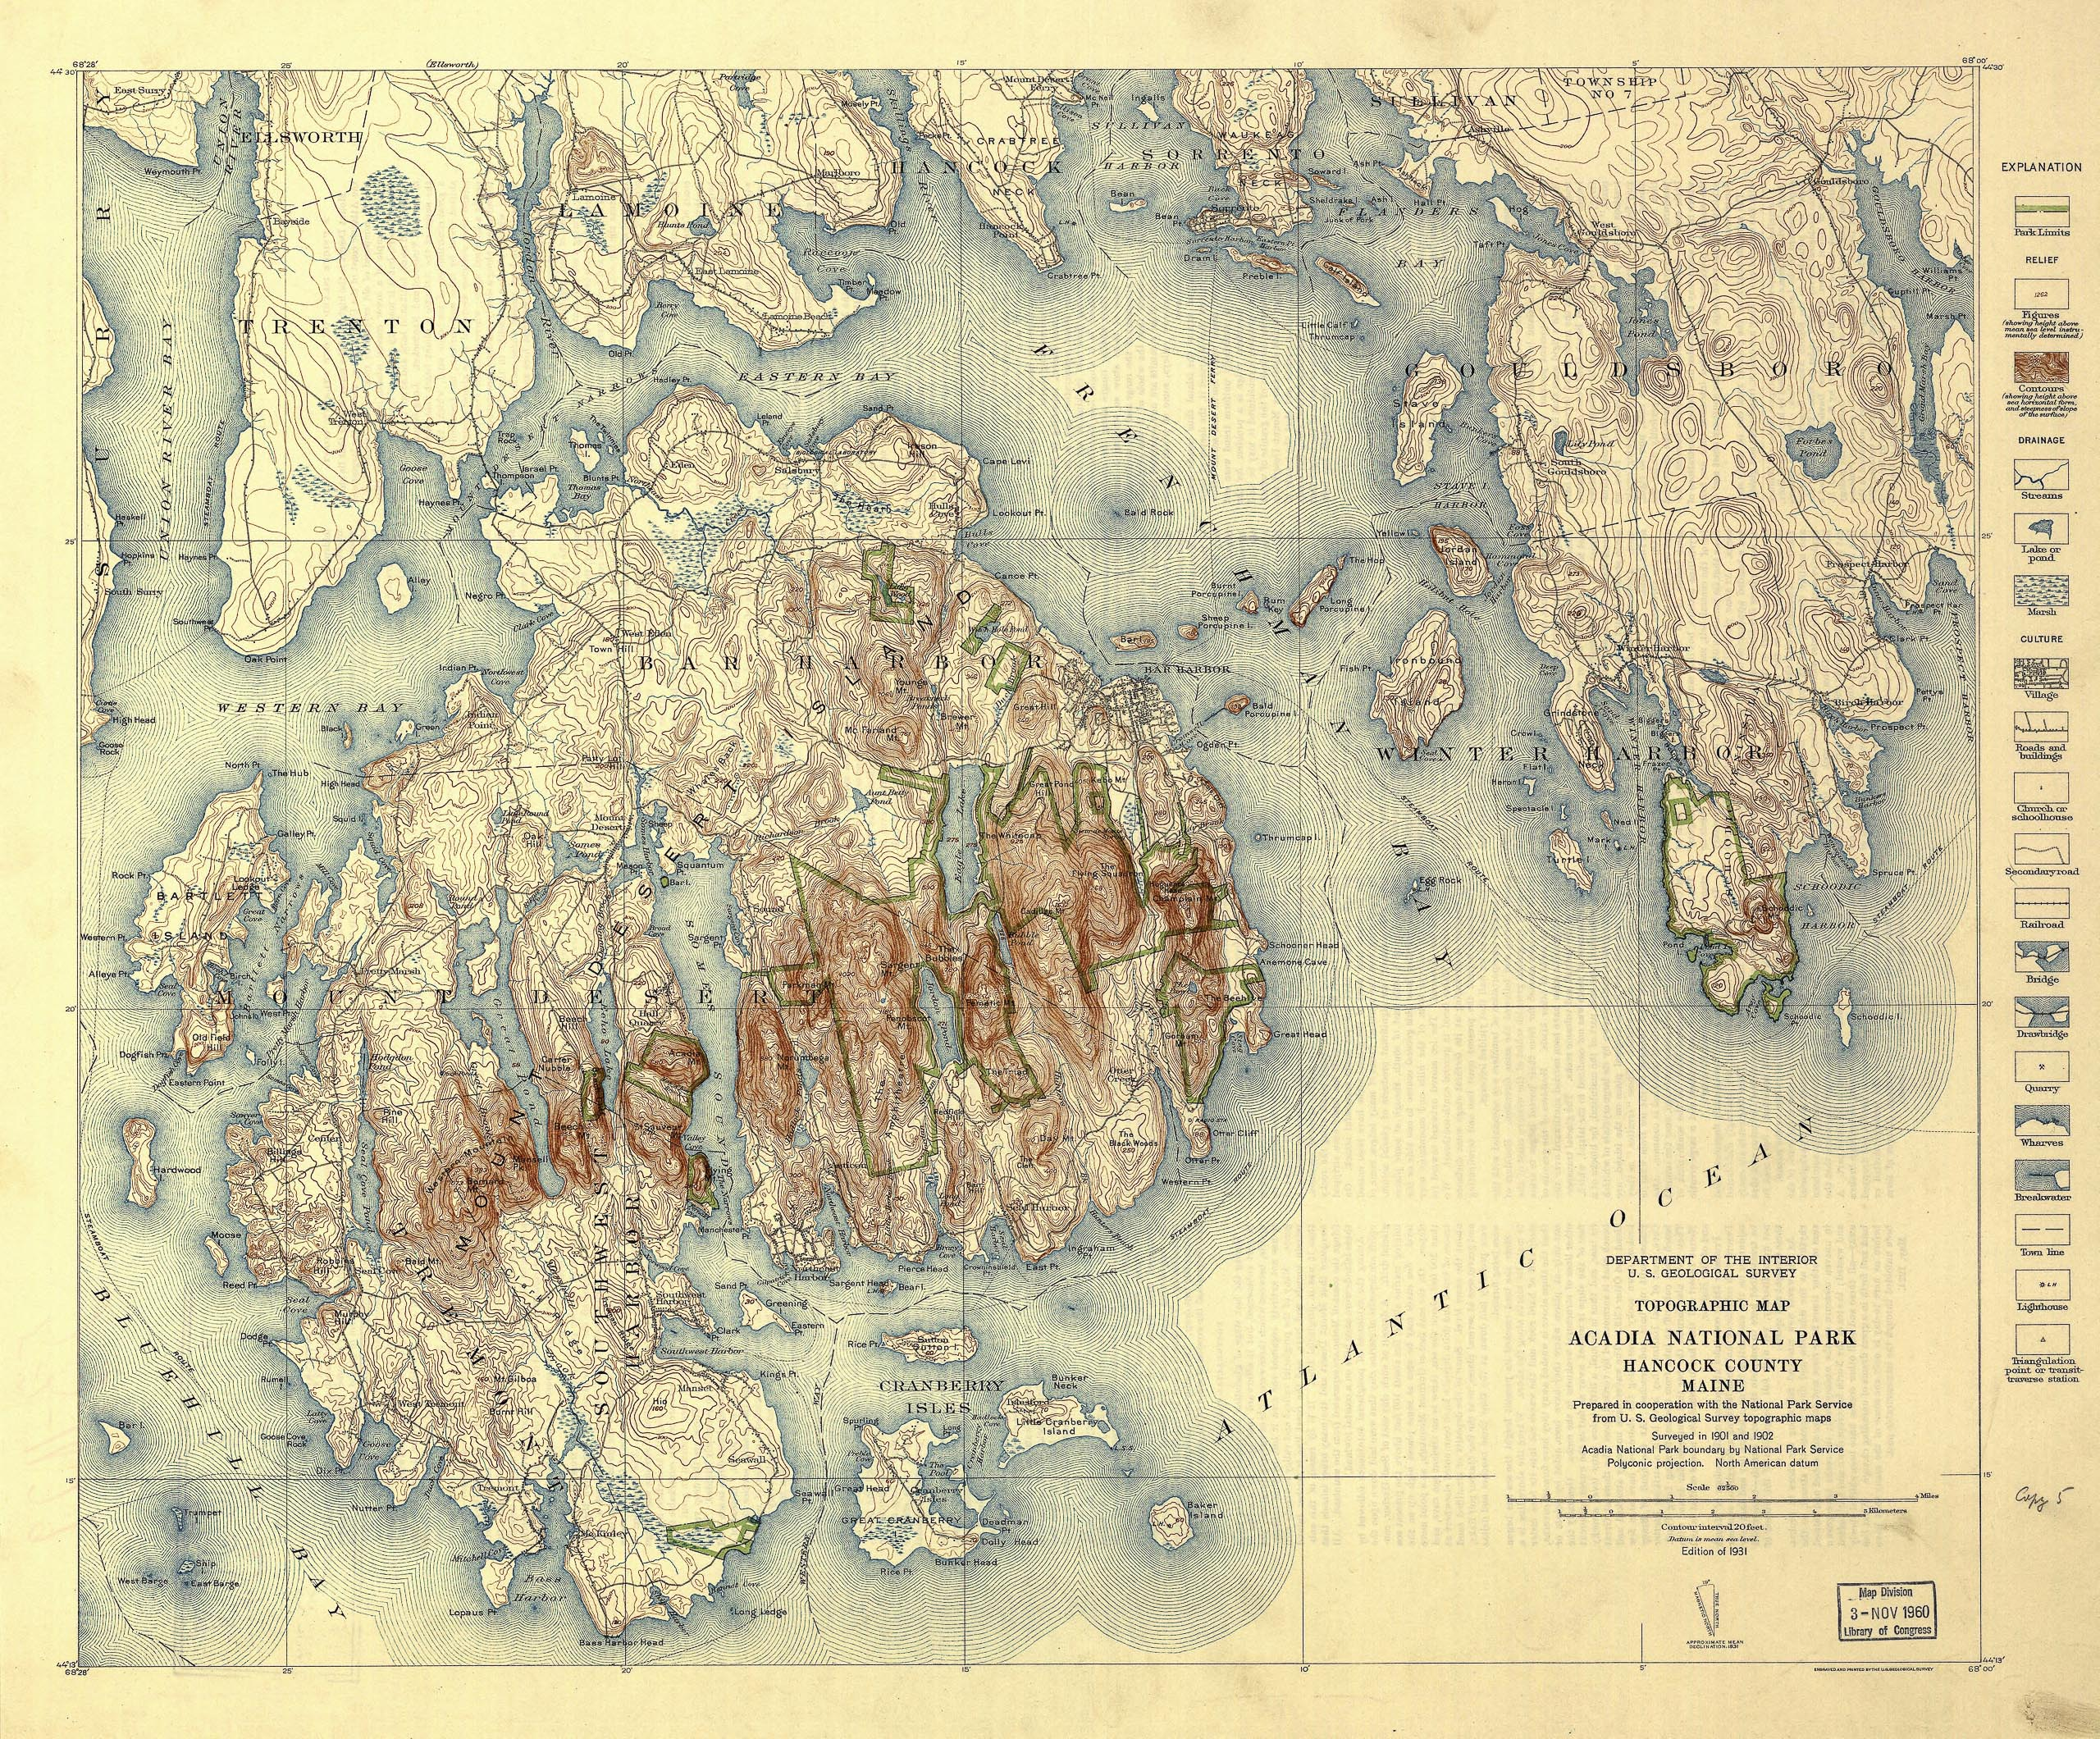 1931 Topographic Map of Acadia National Park, Hancock County, Maine